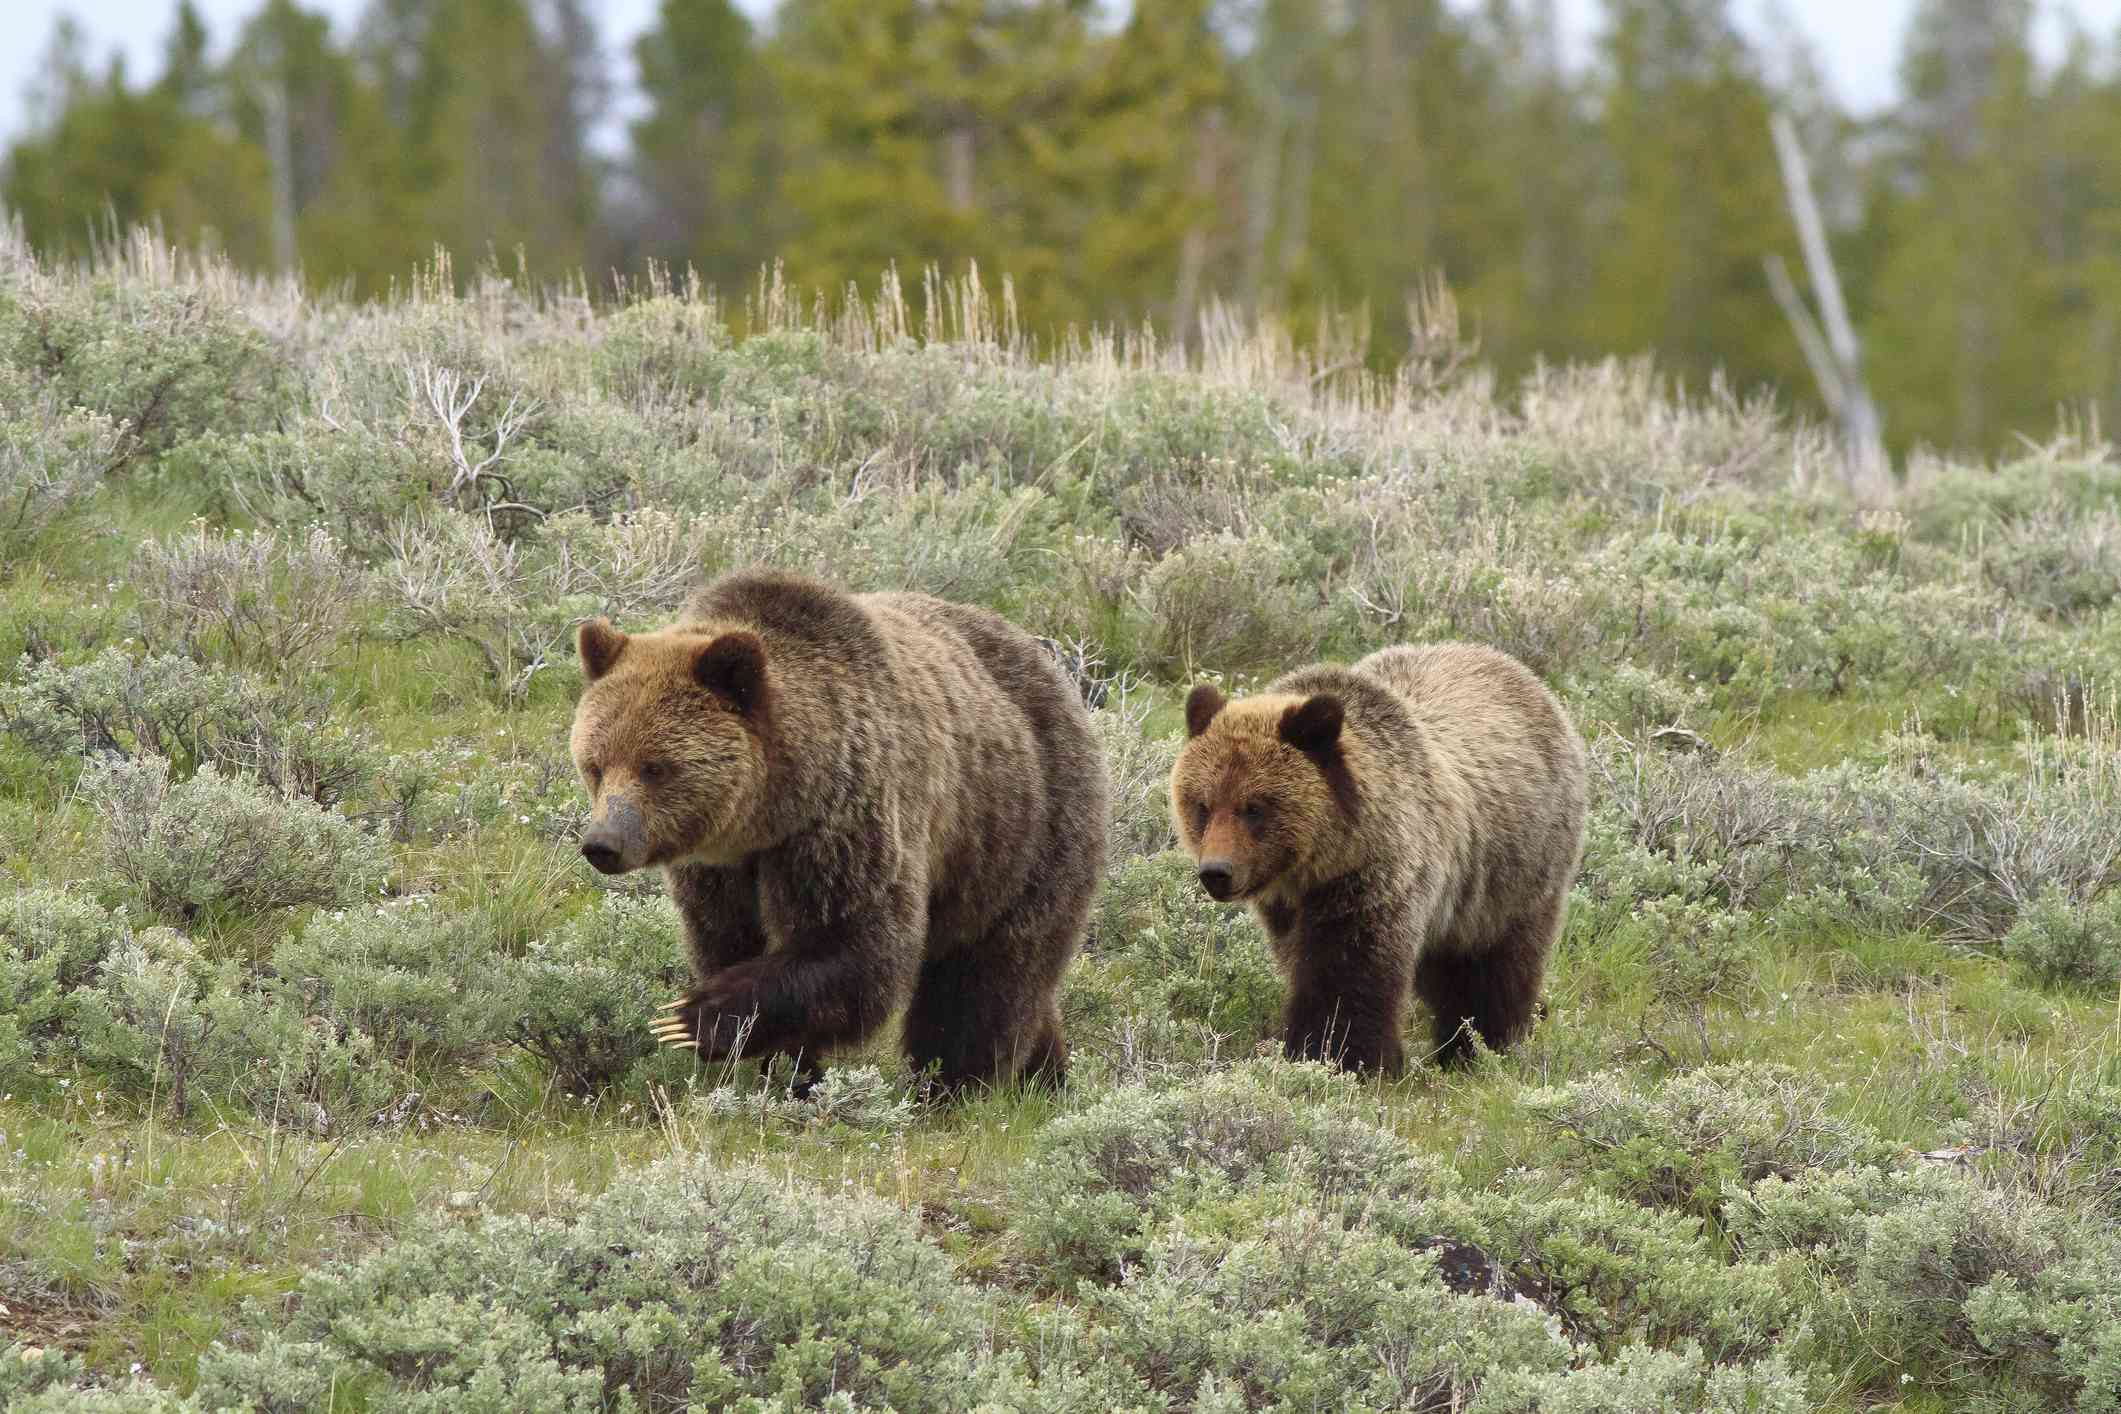 Grizzly bears are protected in Yellowstone under the Endangered Species Act